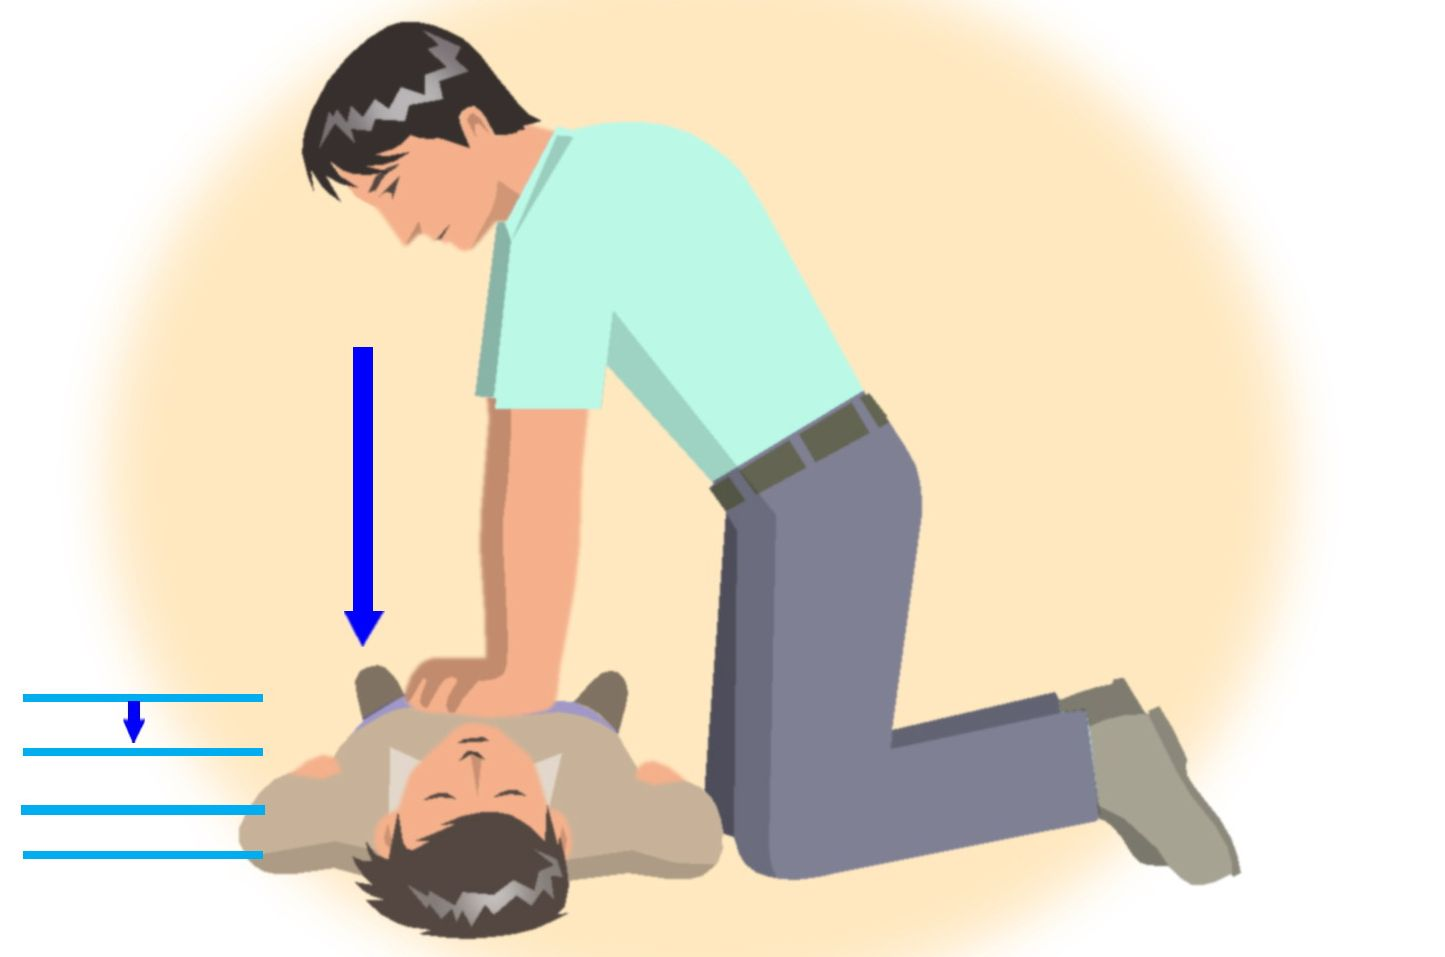 HEARTSAVER CPR/AED FOR ADULTS, CHILDREN, AND INFANTS